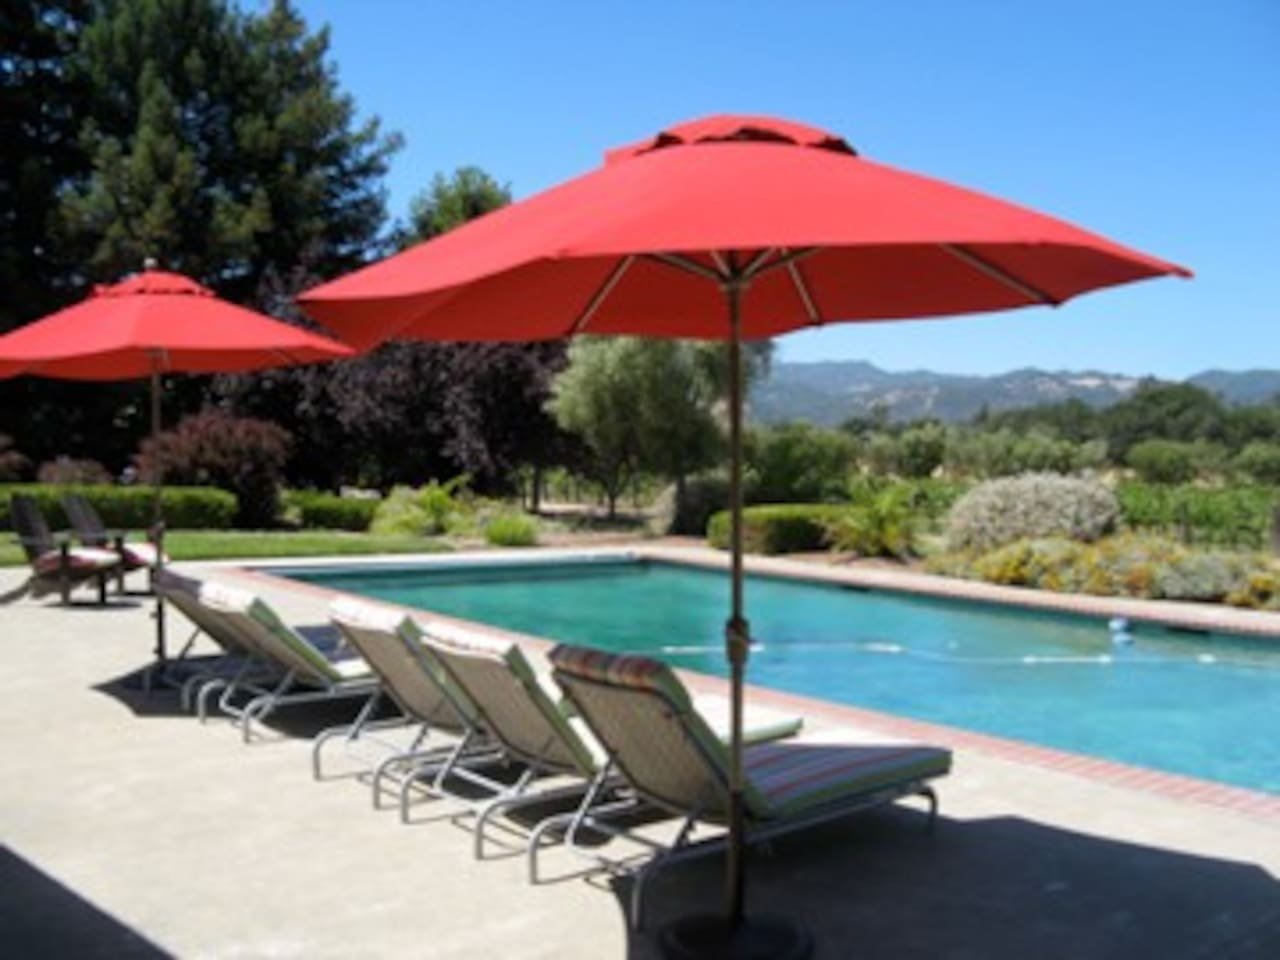 Private pool overlooking the pinot noir vineyard and Mayacamas mountains in the distance